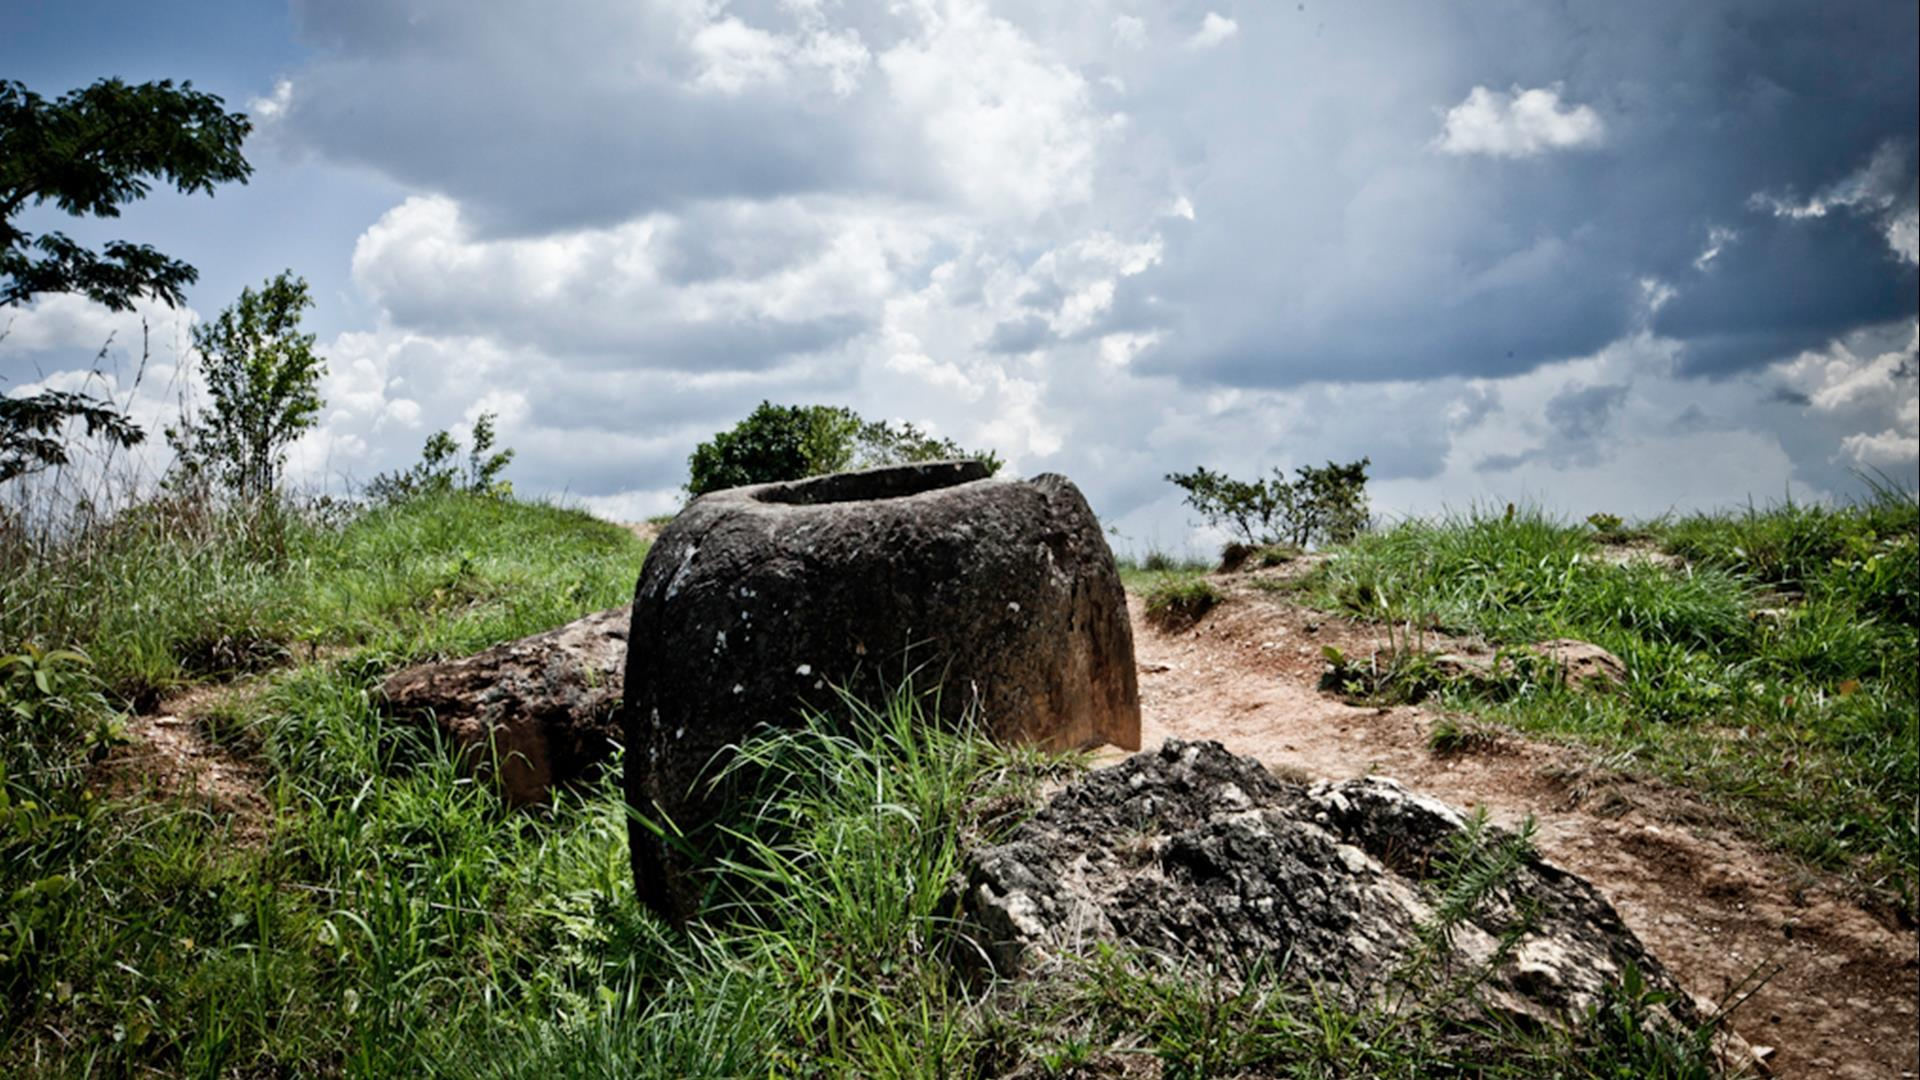 Laos, Phonsavanh: Plain of Jars and Legacy of War - 3 Days | Mysterious Heritage